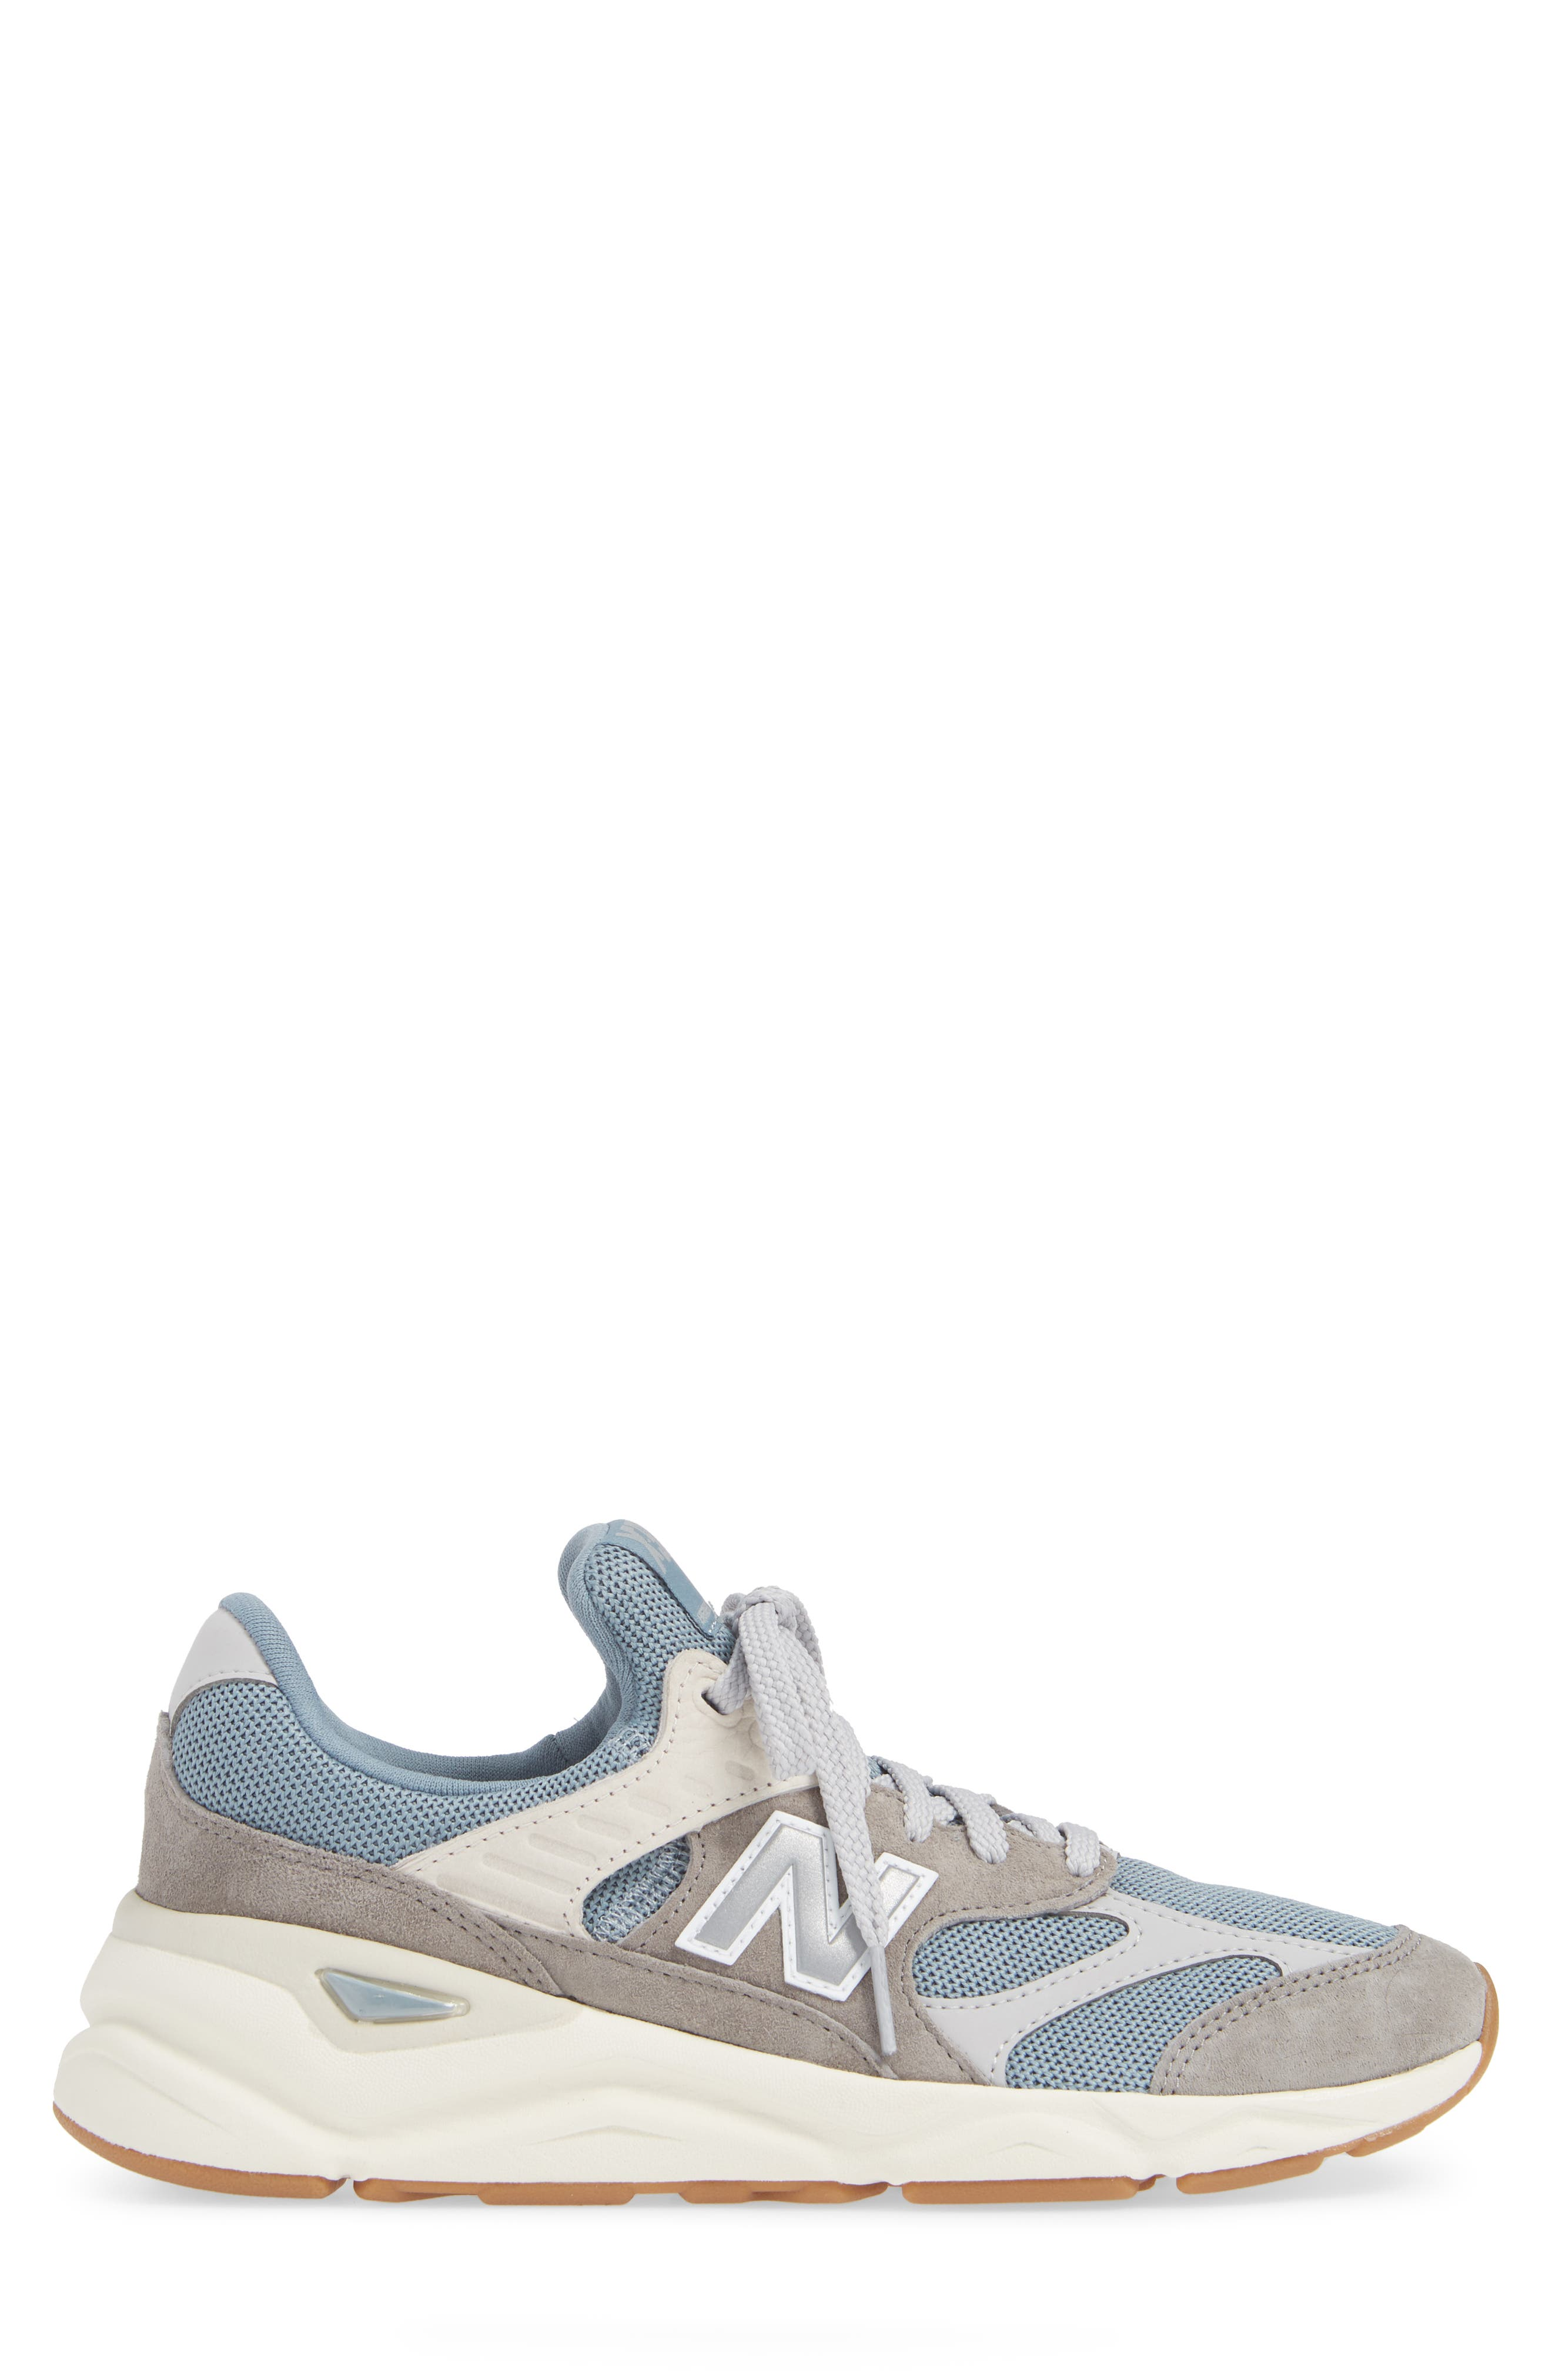 X-90 Sneaker,                             Alternate thumbnail 3, color,                             CYCLONE SUEDE/ TEXTILE